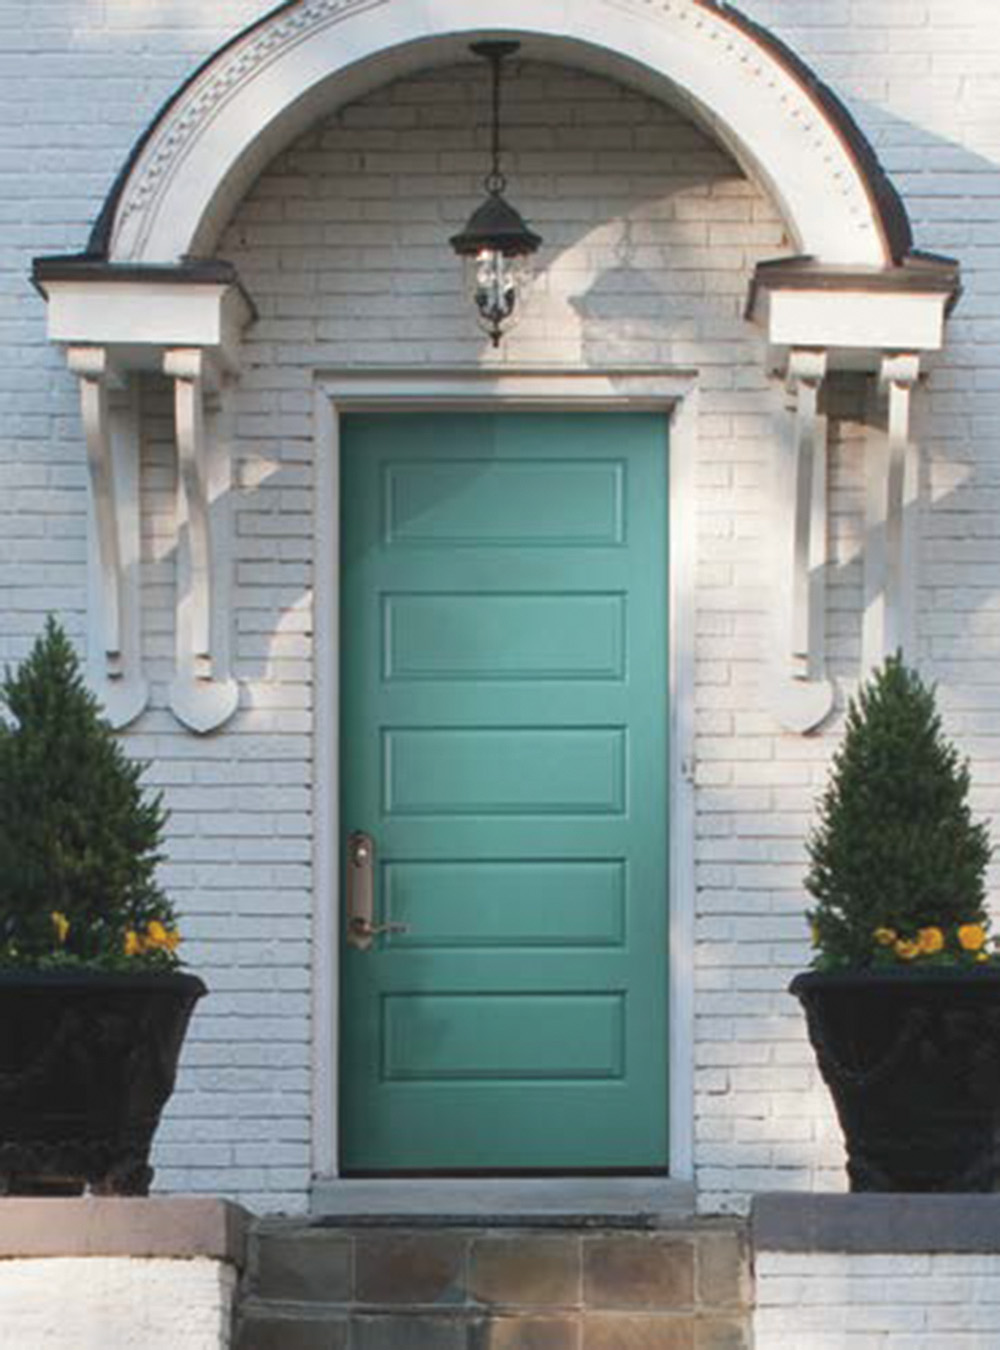 Vibrancy Collection Door In Sparkling Teal